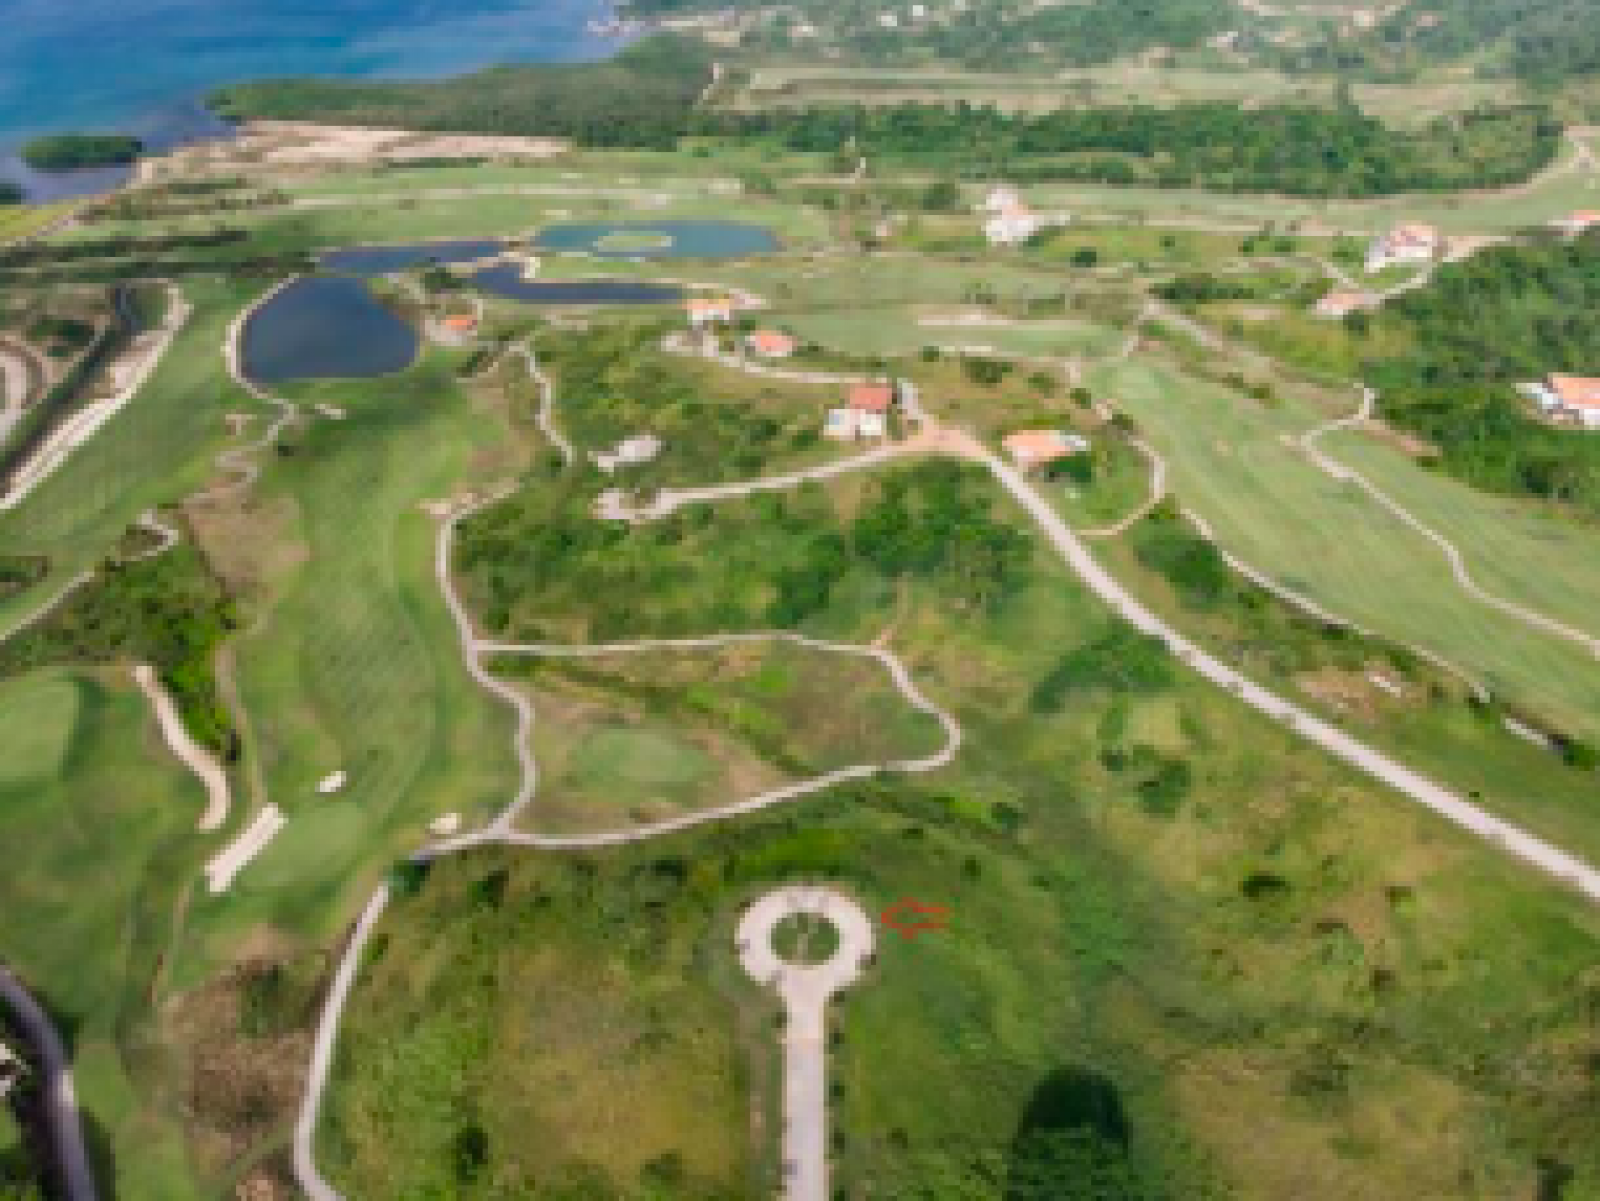 Homesite Golf course Bargain priced World Golf Hall of Fame\', Pete Dye Finest golf course in Central America, South America and much of the Caribbean. Restaurants, beach, swimming pools, tennis courts, concrete roadways, Underground utilities